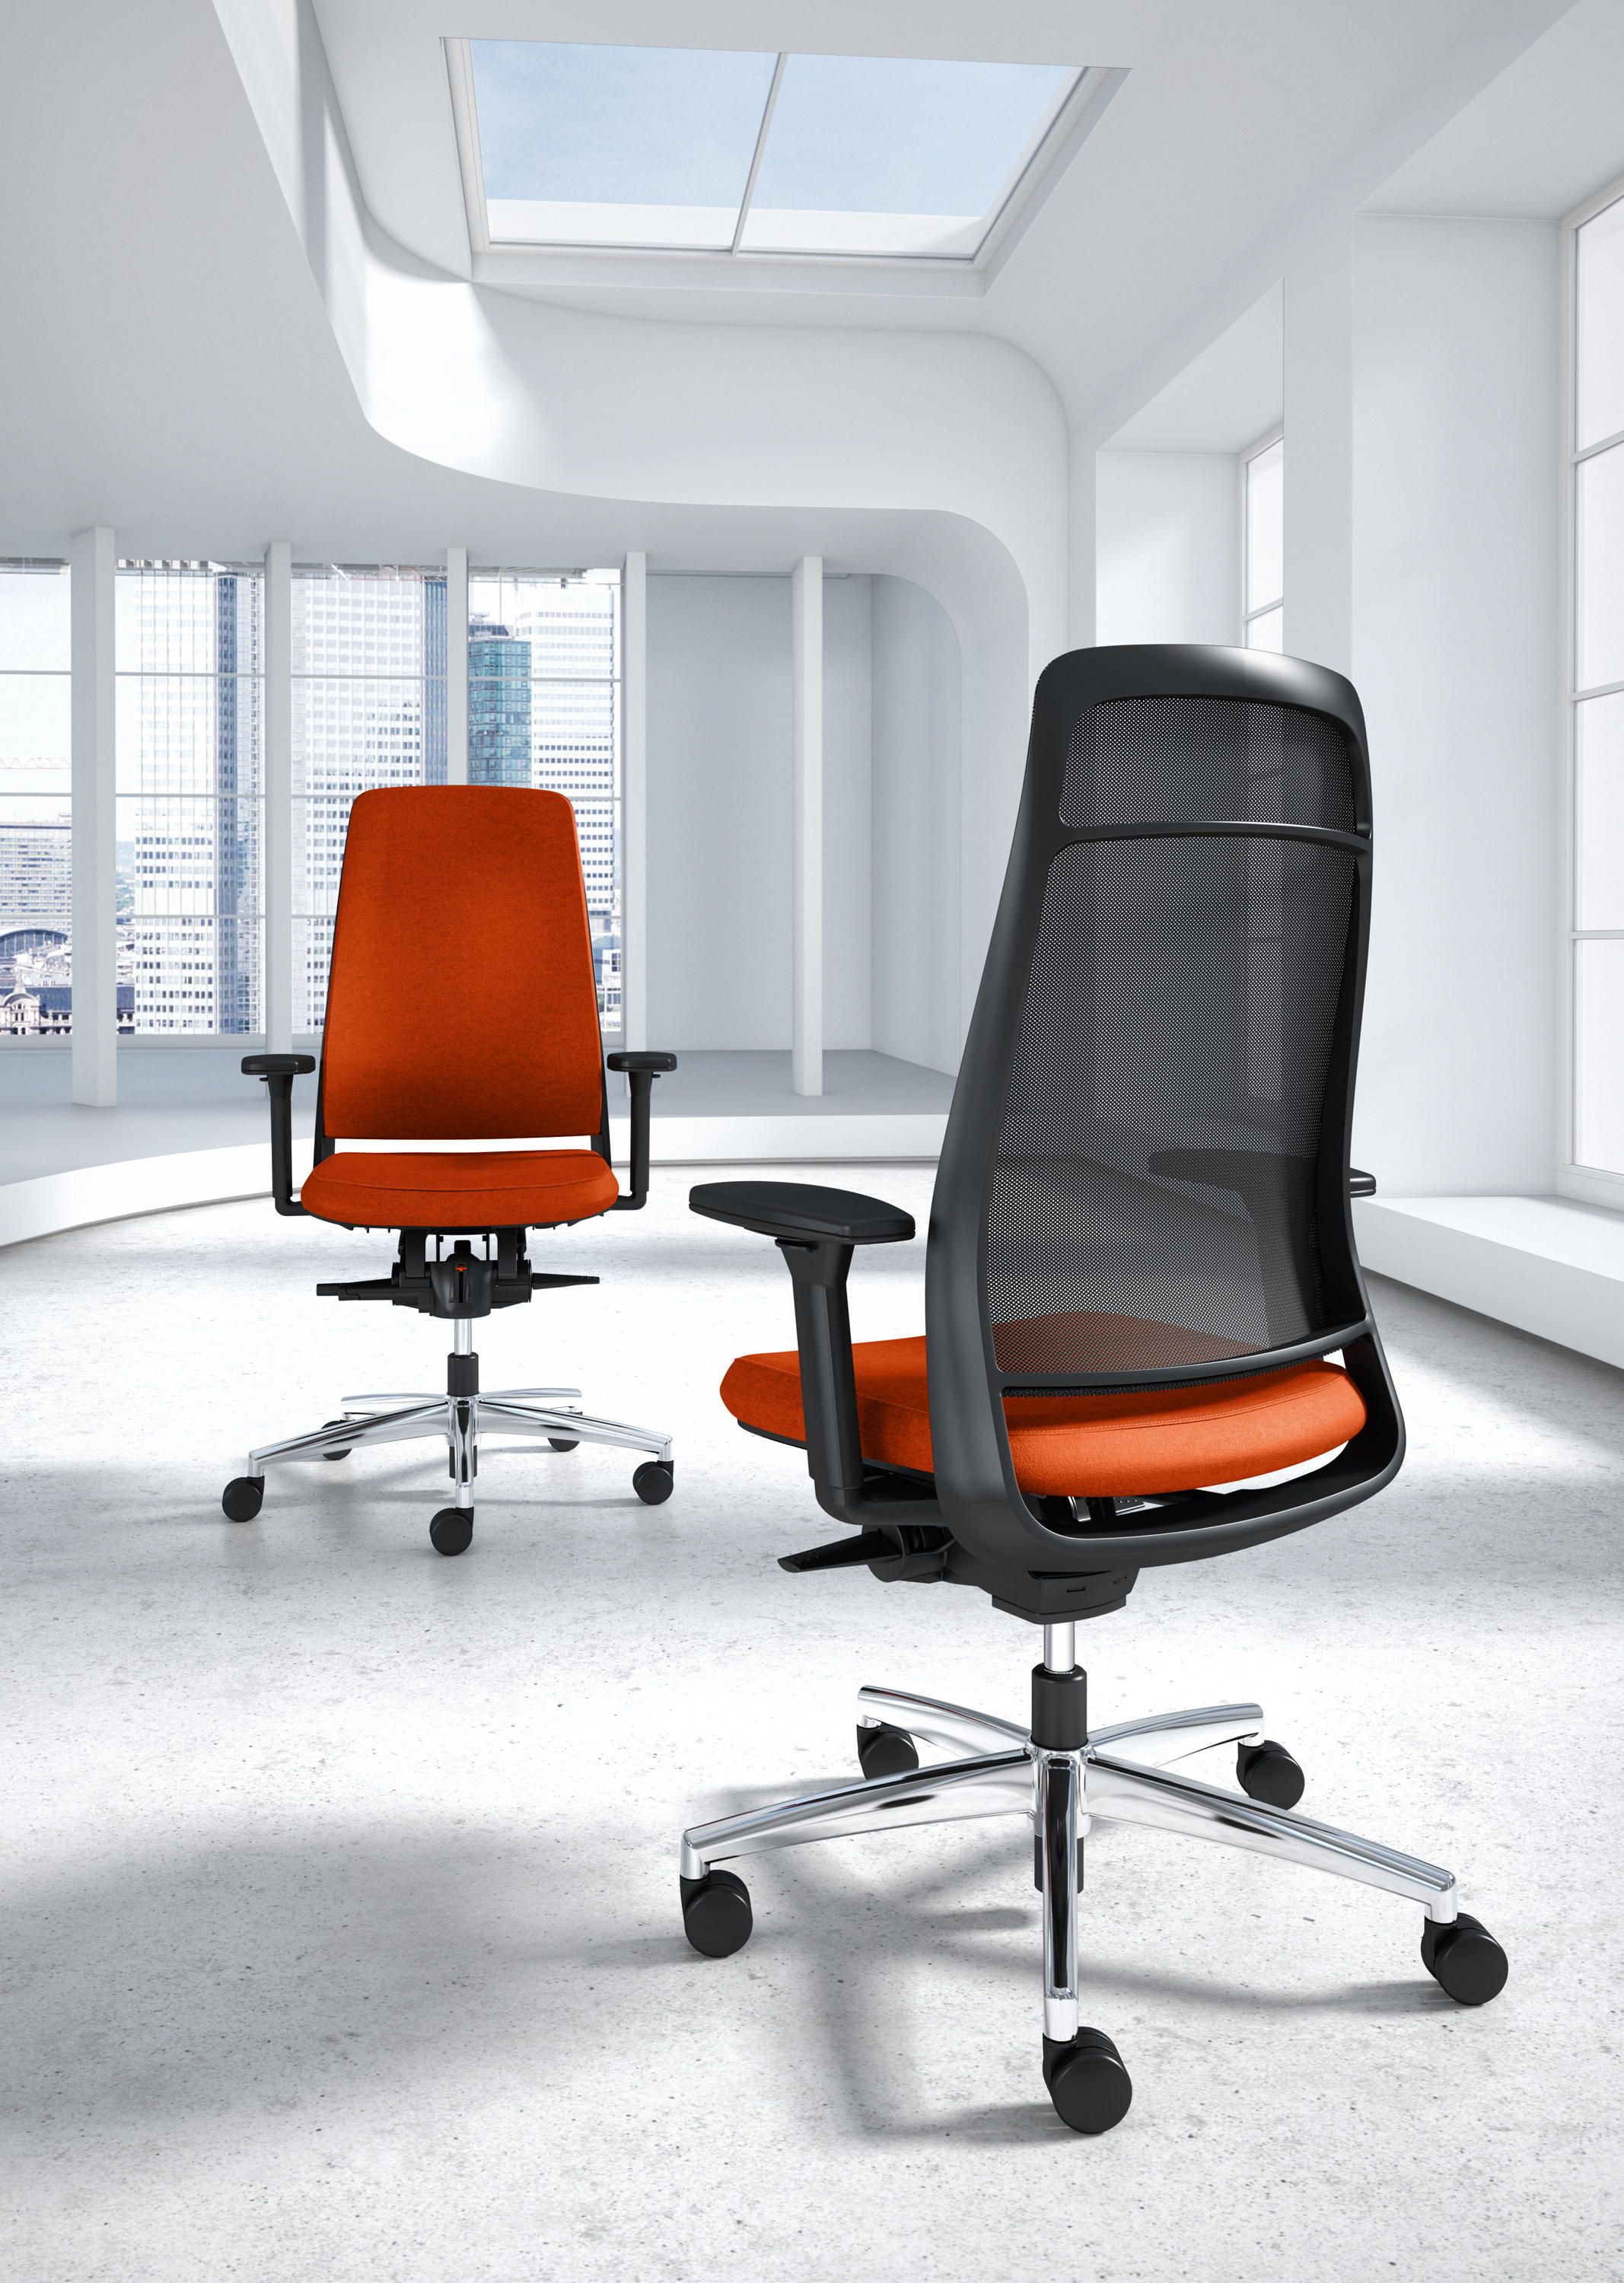 TENSA.NEXT SWIVEL CHAIR Designer Office chairs from